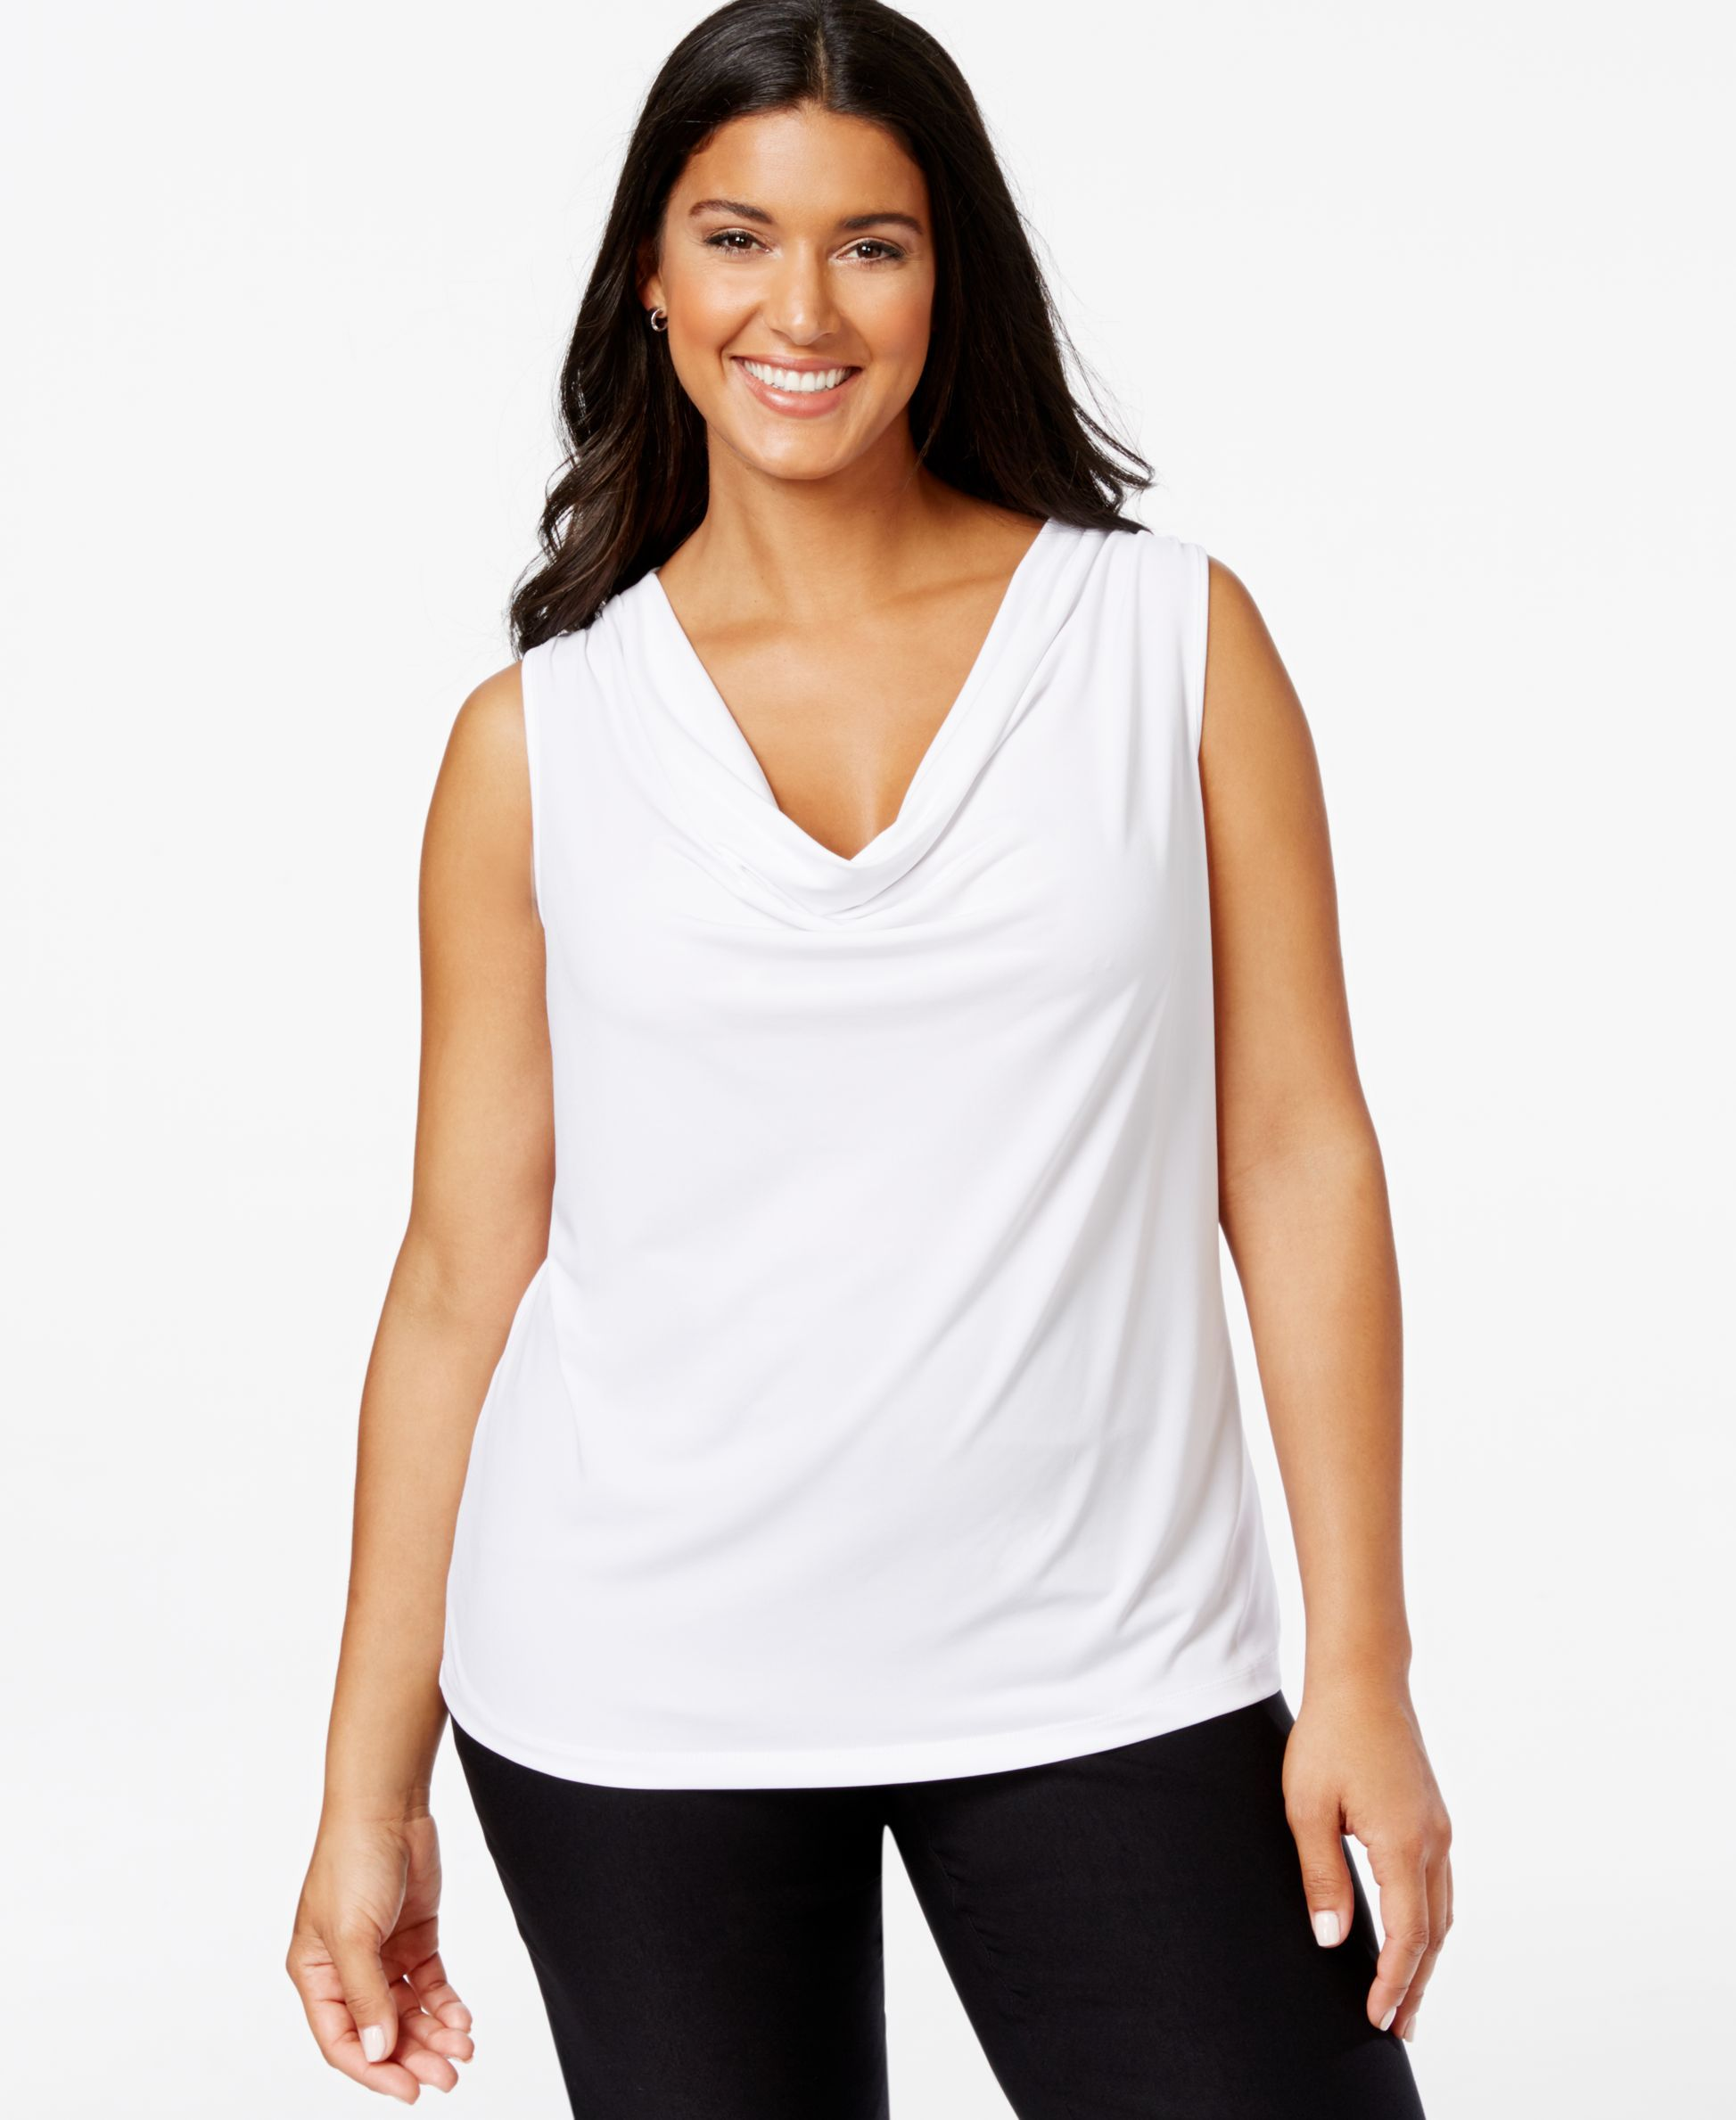 CONNECTED APPAREL $89 Womens New Navy Boat Neck Sleeveless